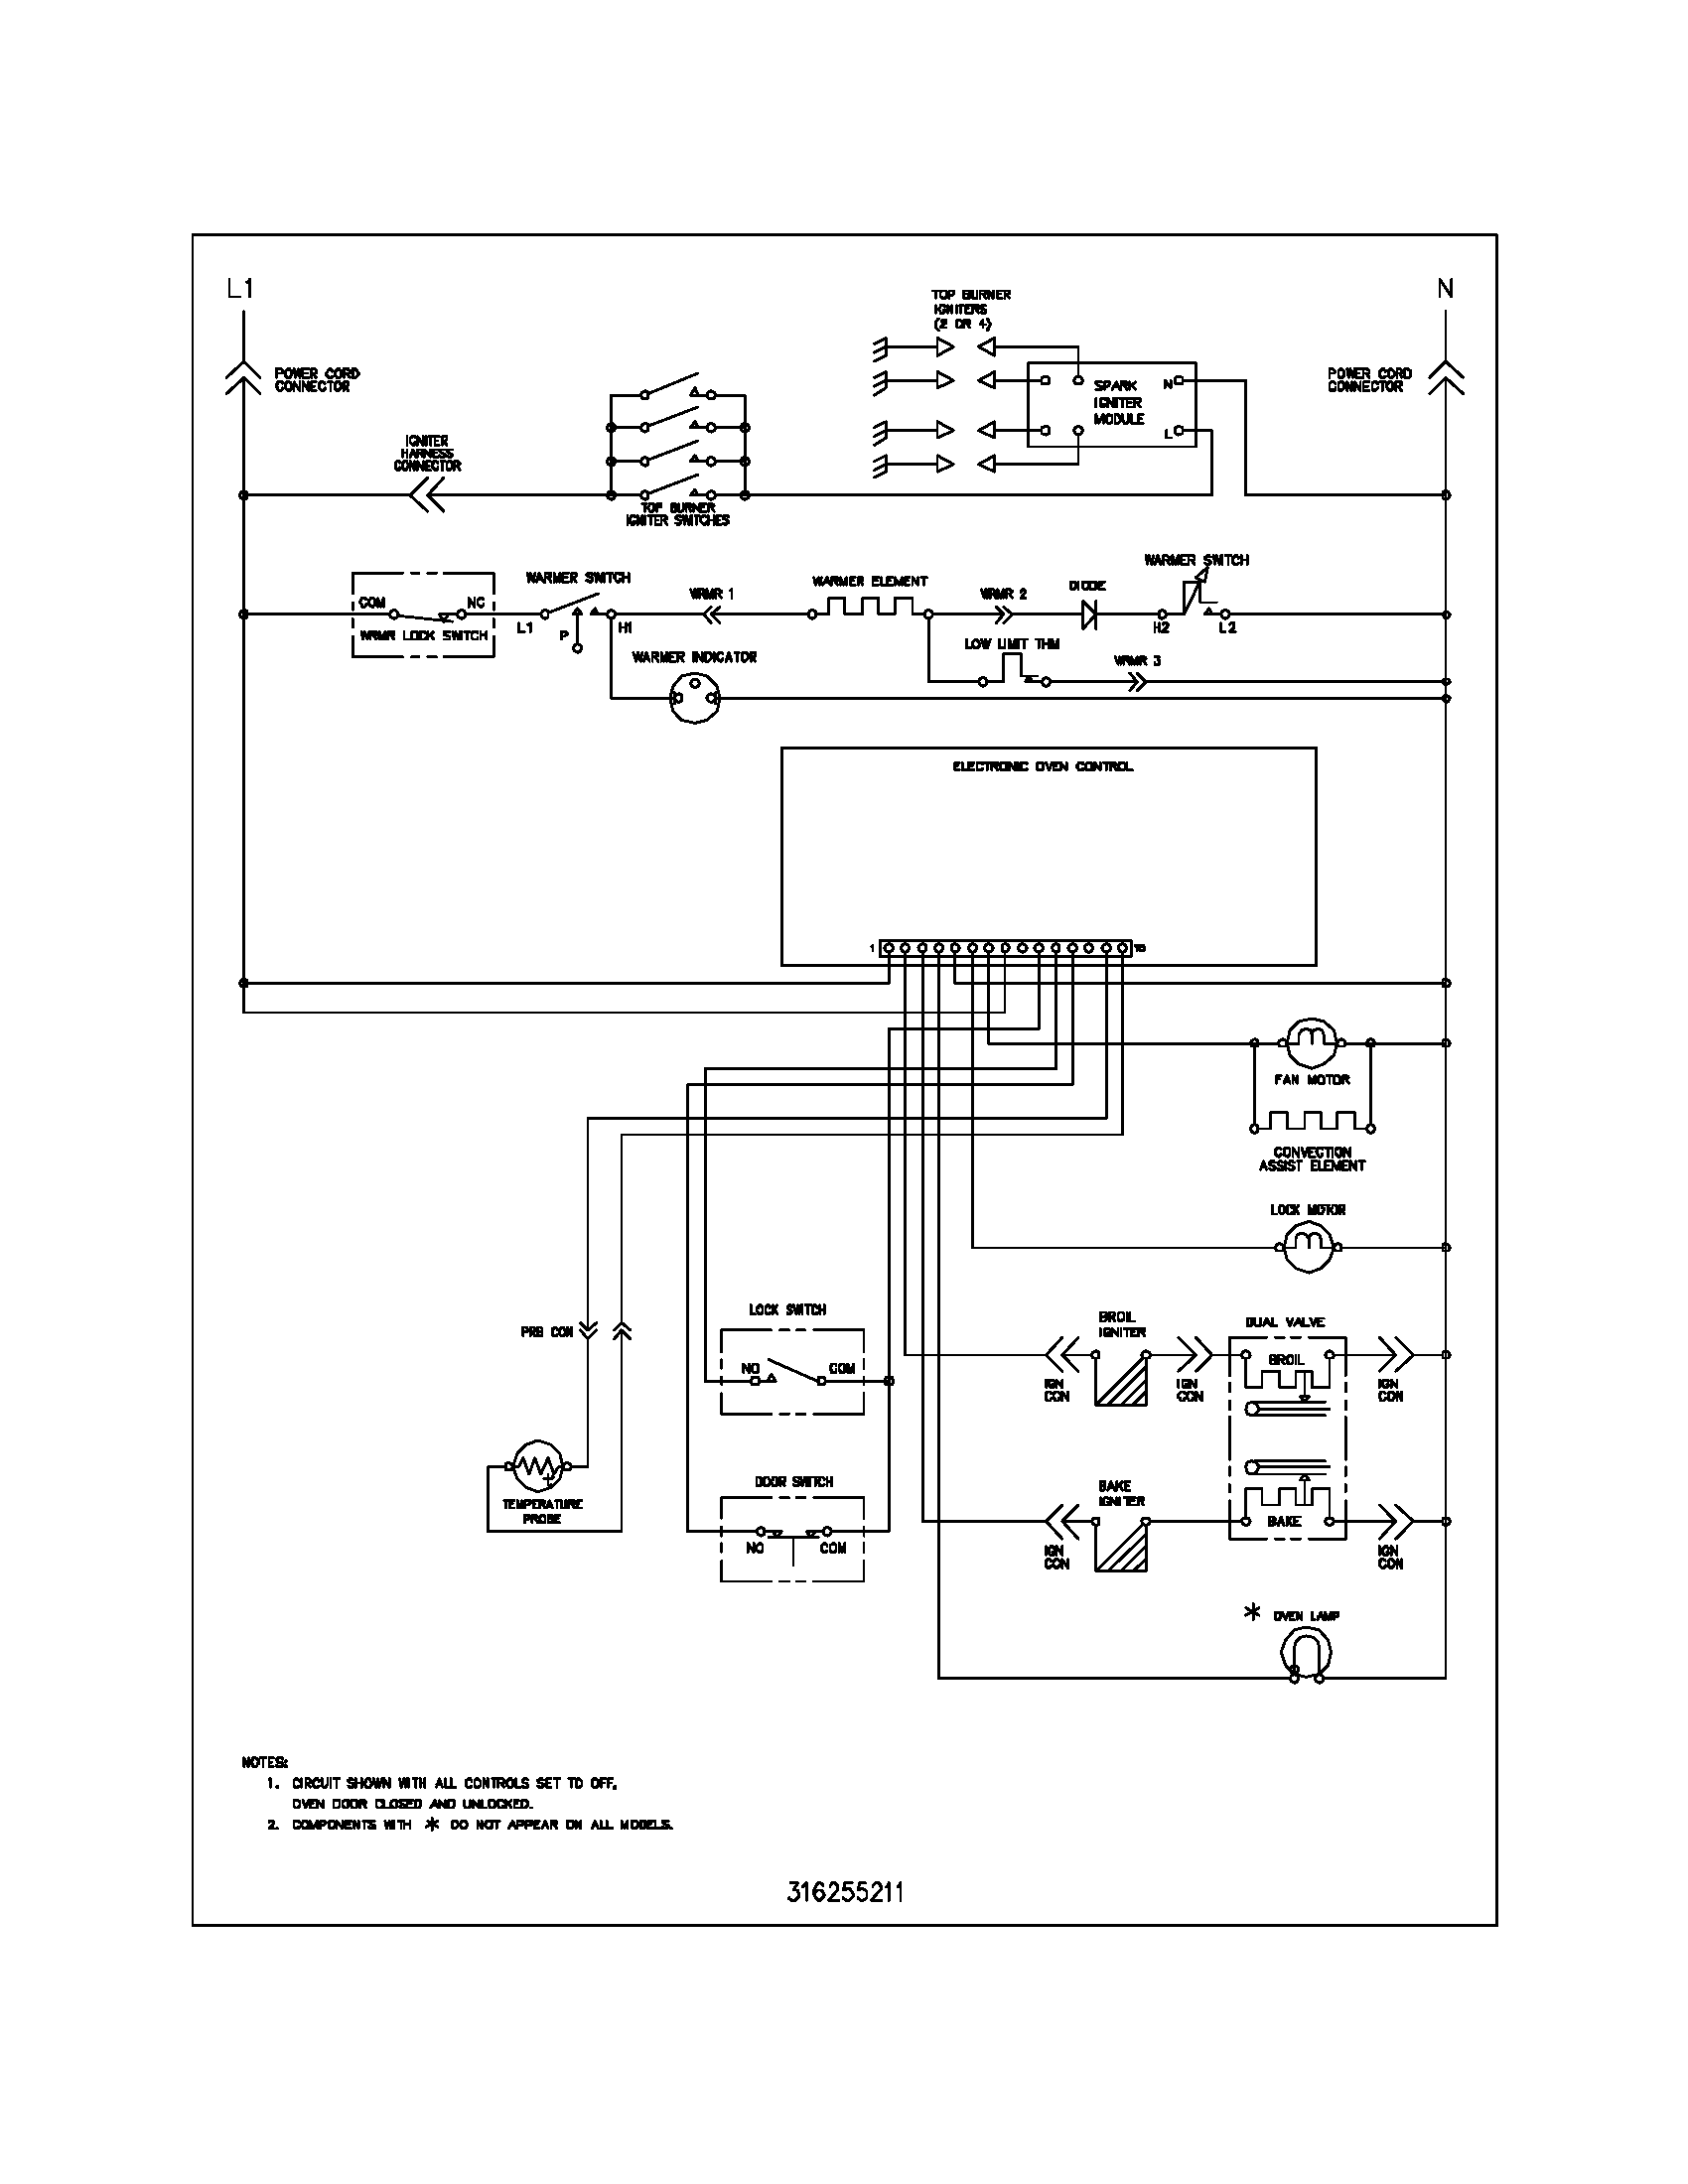 gas fireplace wiring diagram gas image wiring diagram gas fireplace thermostat wiring junsa us on gas fireplace wiring diagram